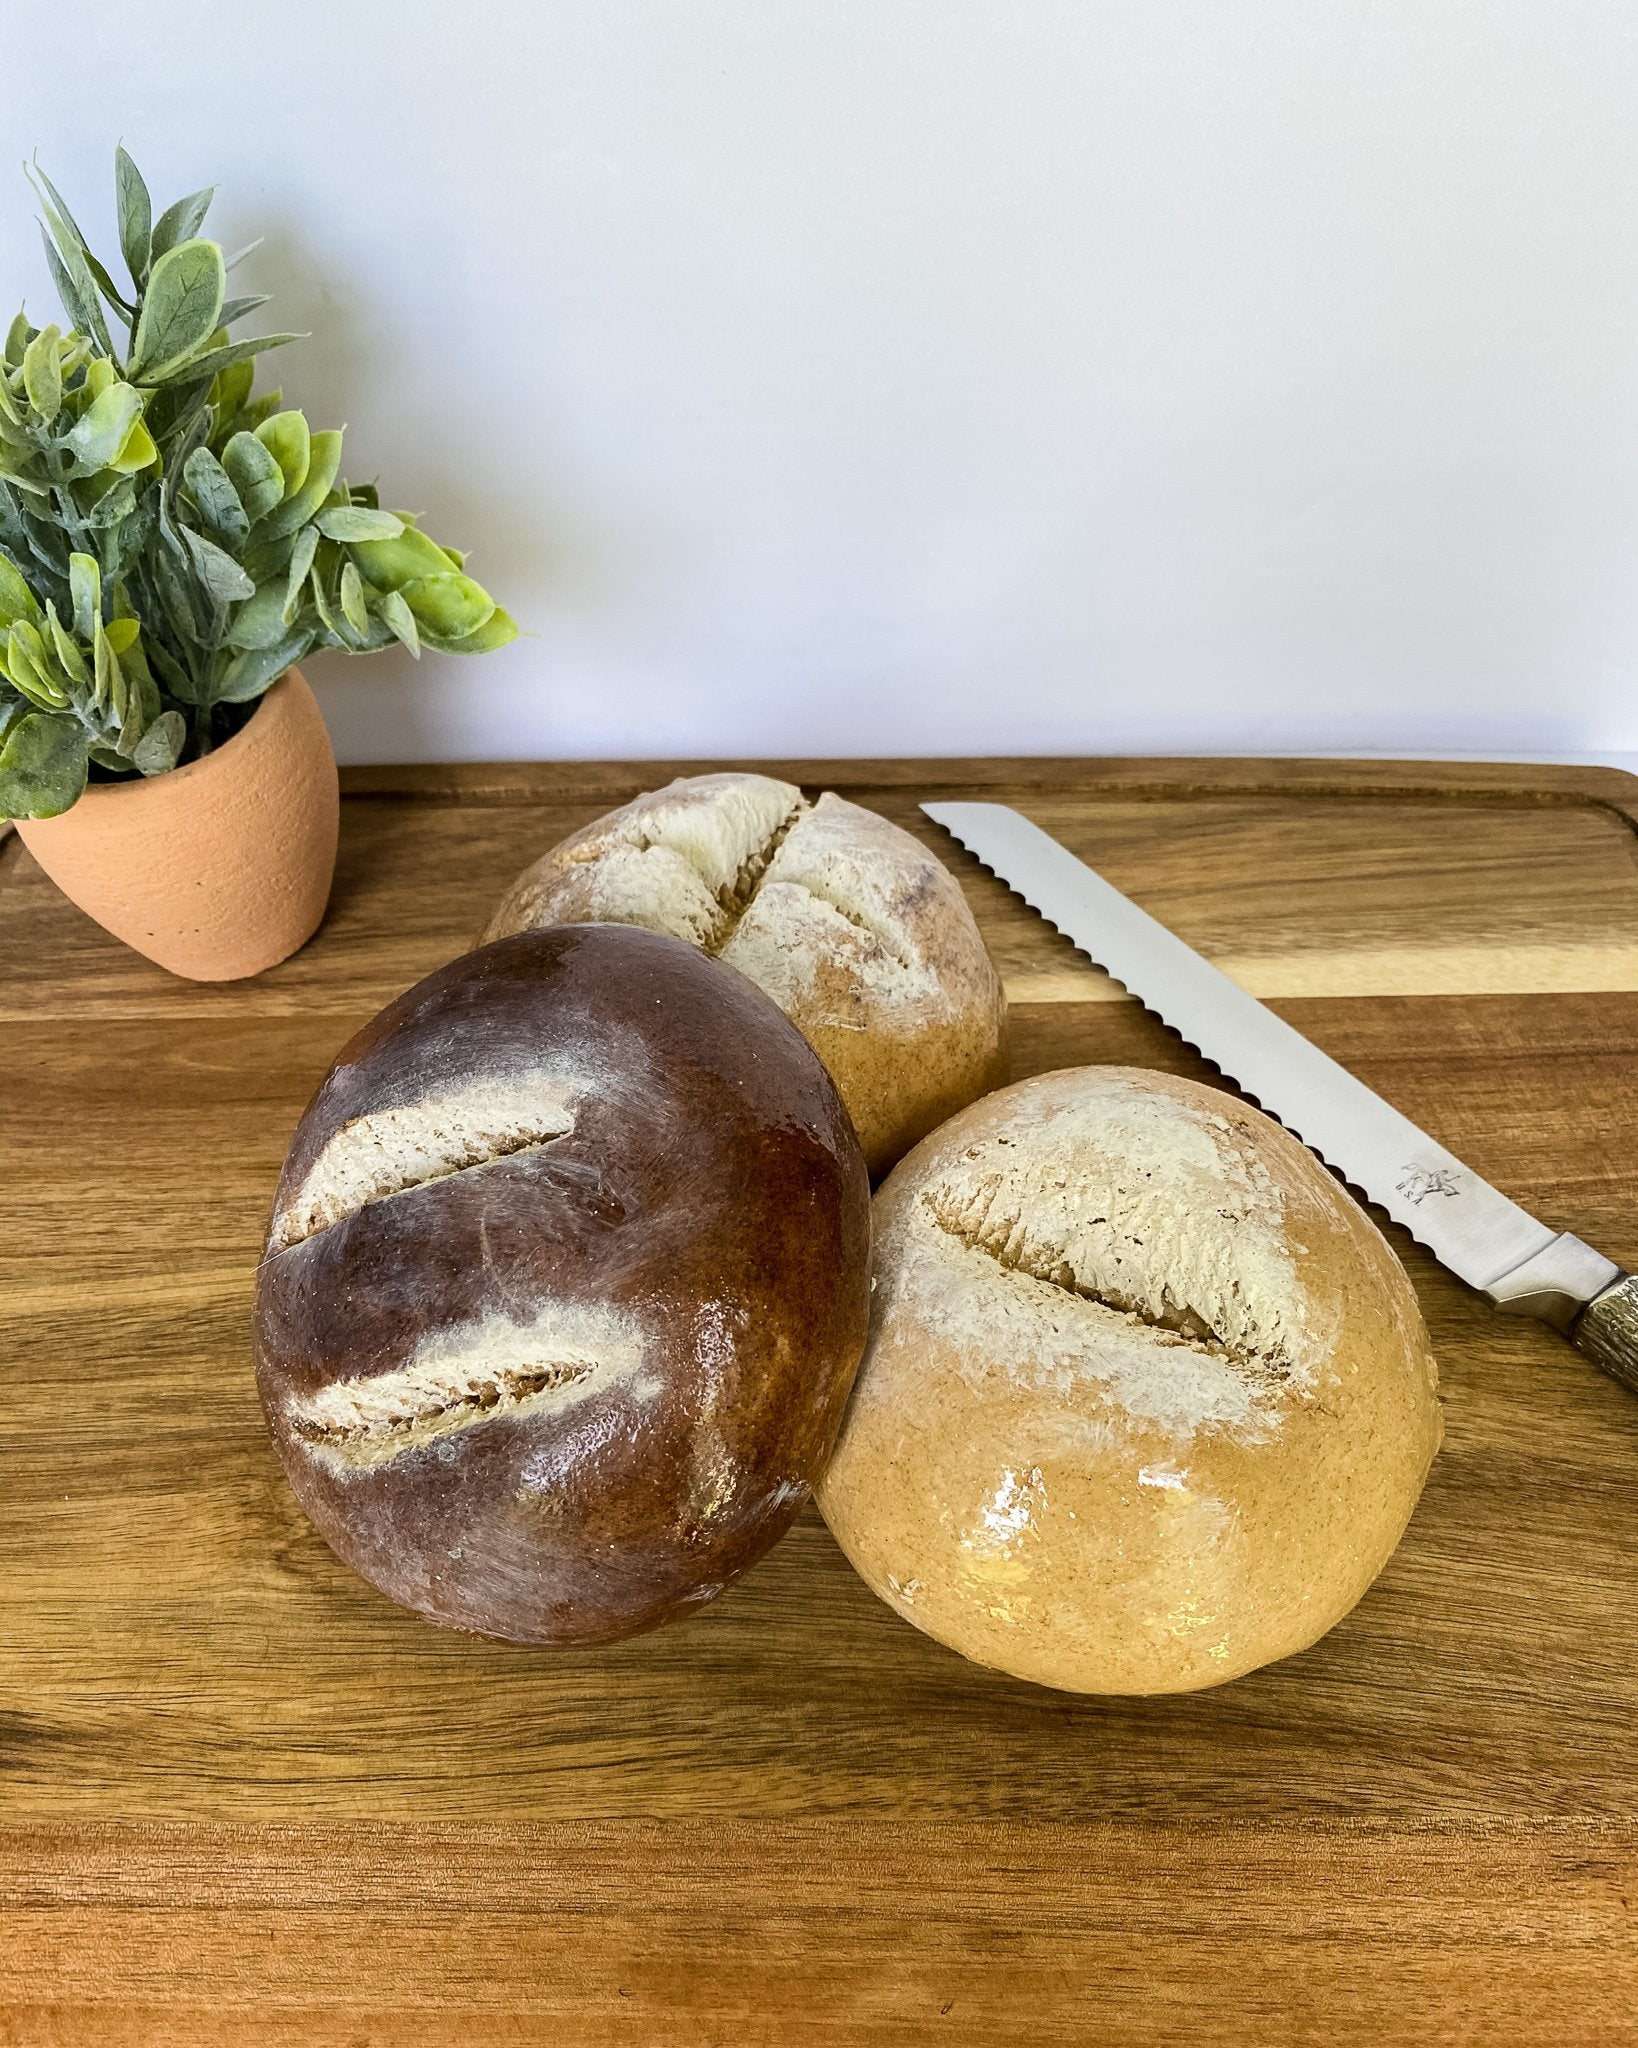 Everything Dawn Bakery Candle Treats Fake Bread Fake Rustic Round Bread Single Loaf